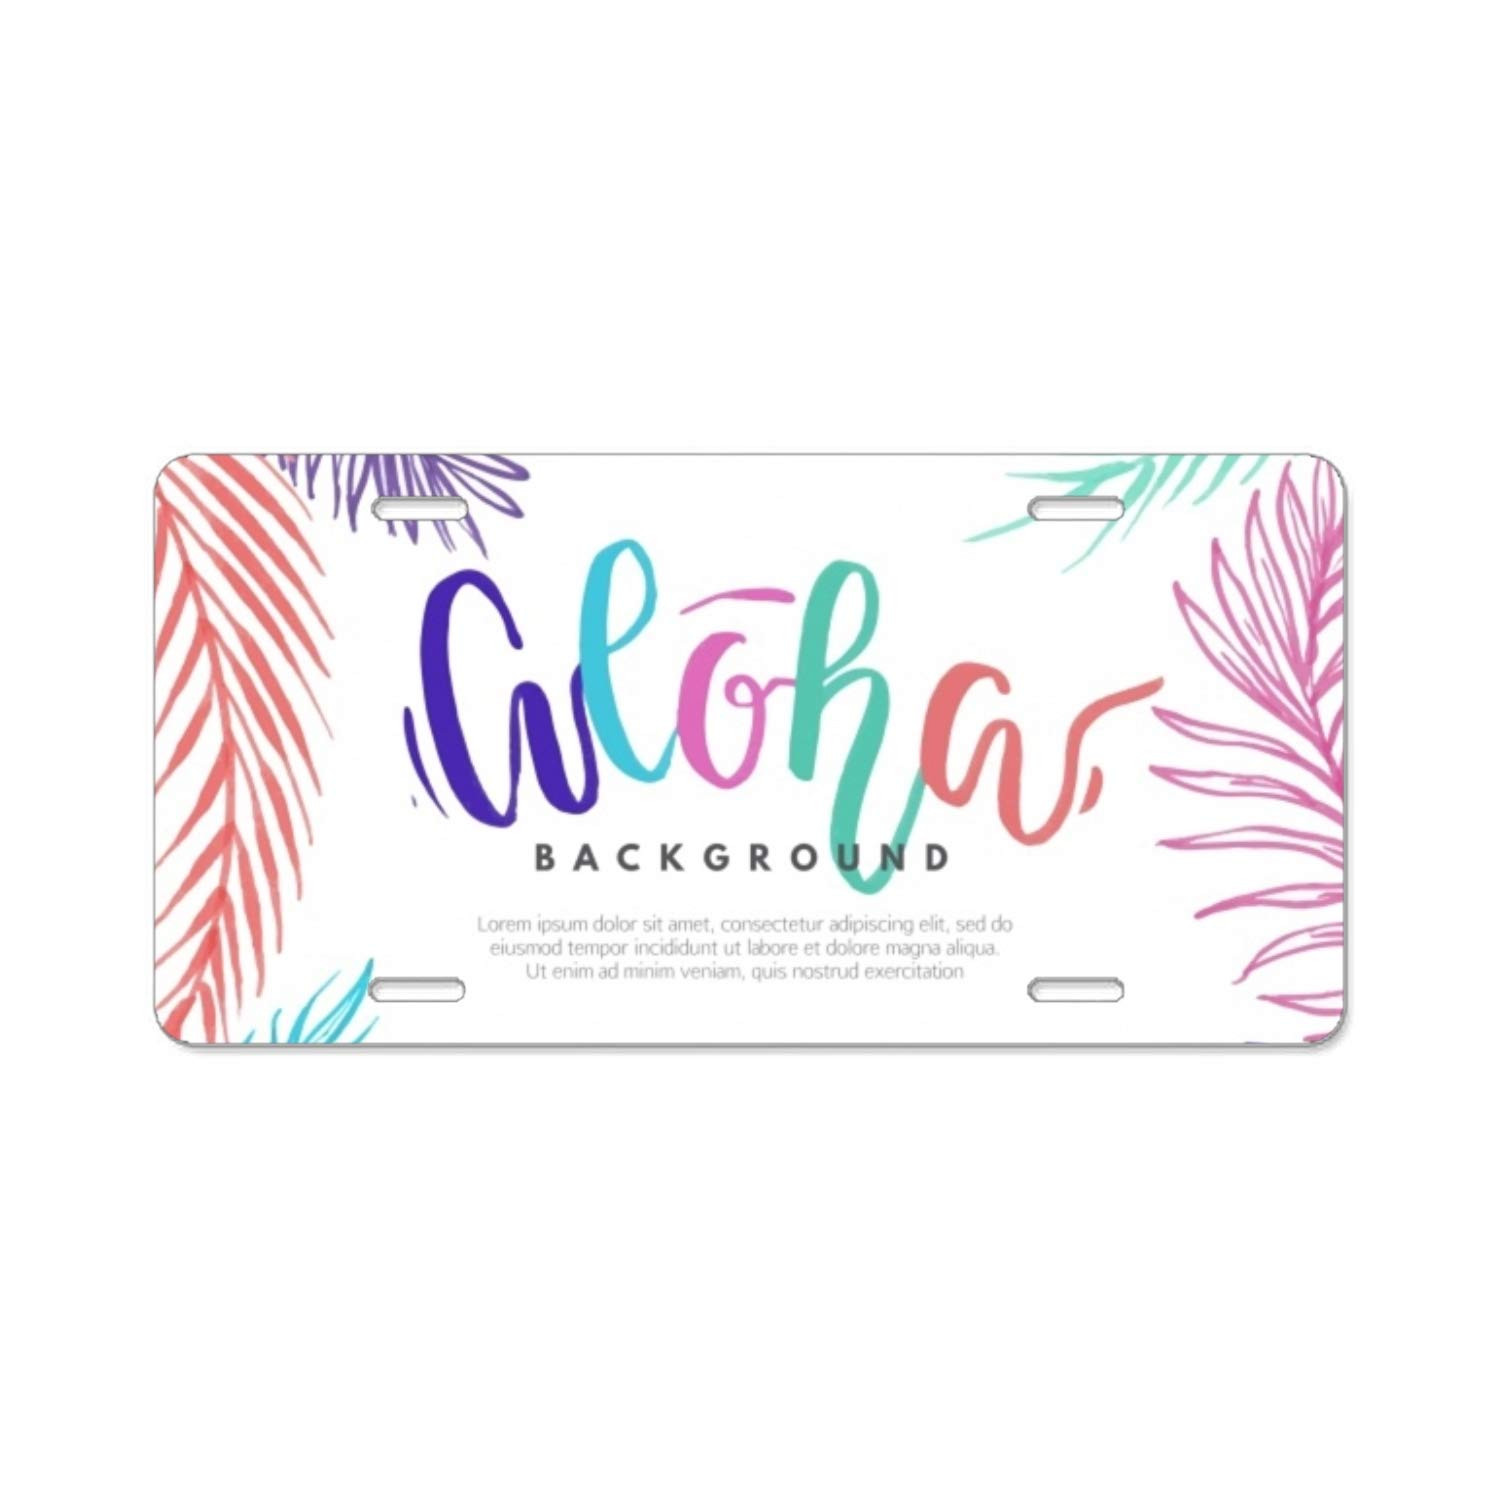 Amazon.com: Elvira Jasper Background with Sketches of Colorful Palm Leaves License Plate Frame Grade Alumina Frames Slim Bracket: Sports & Outdoors